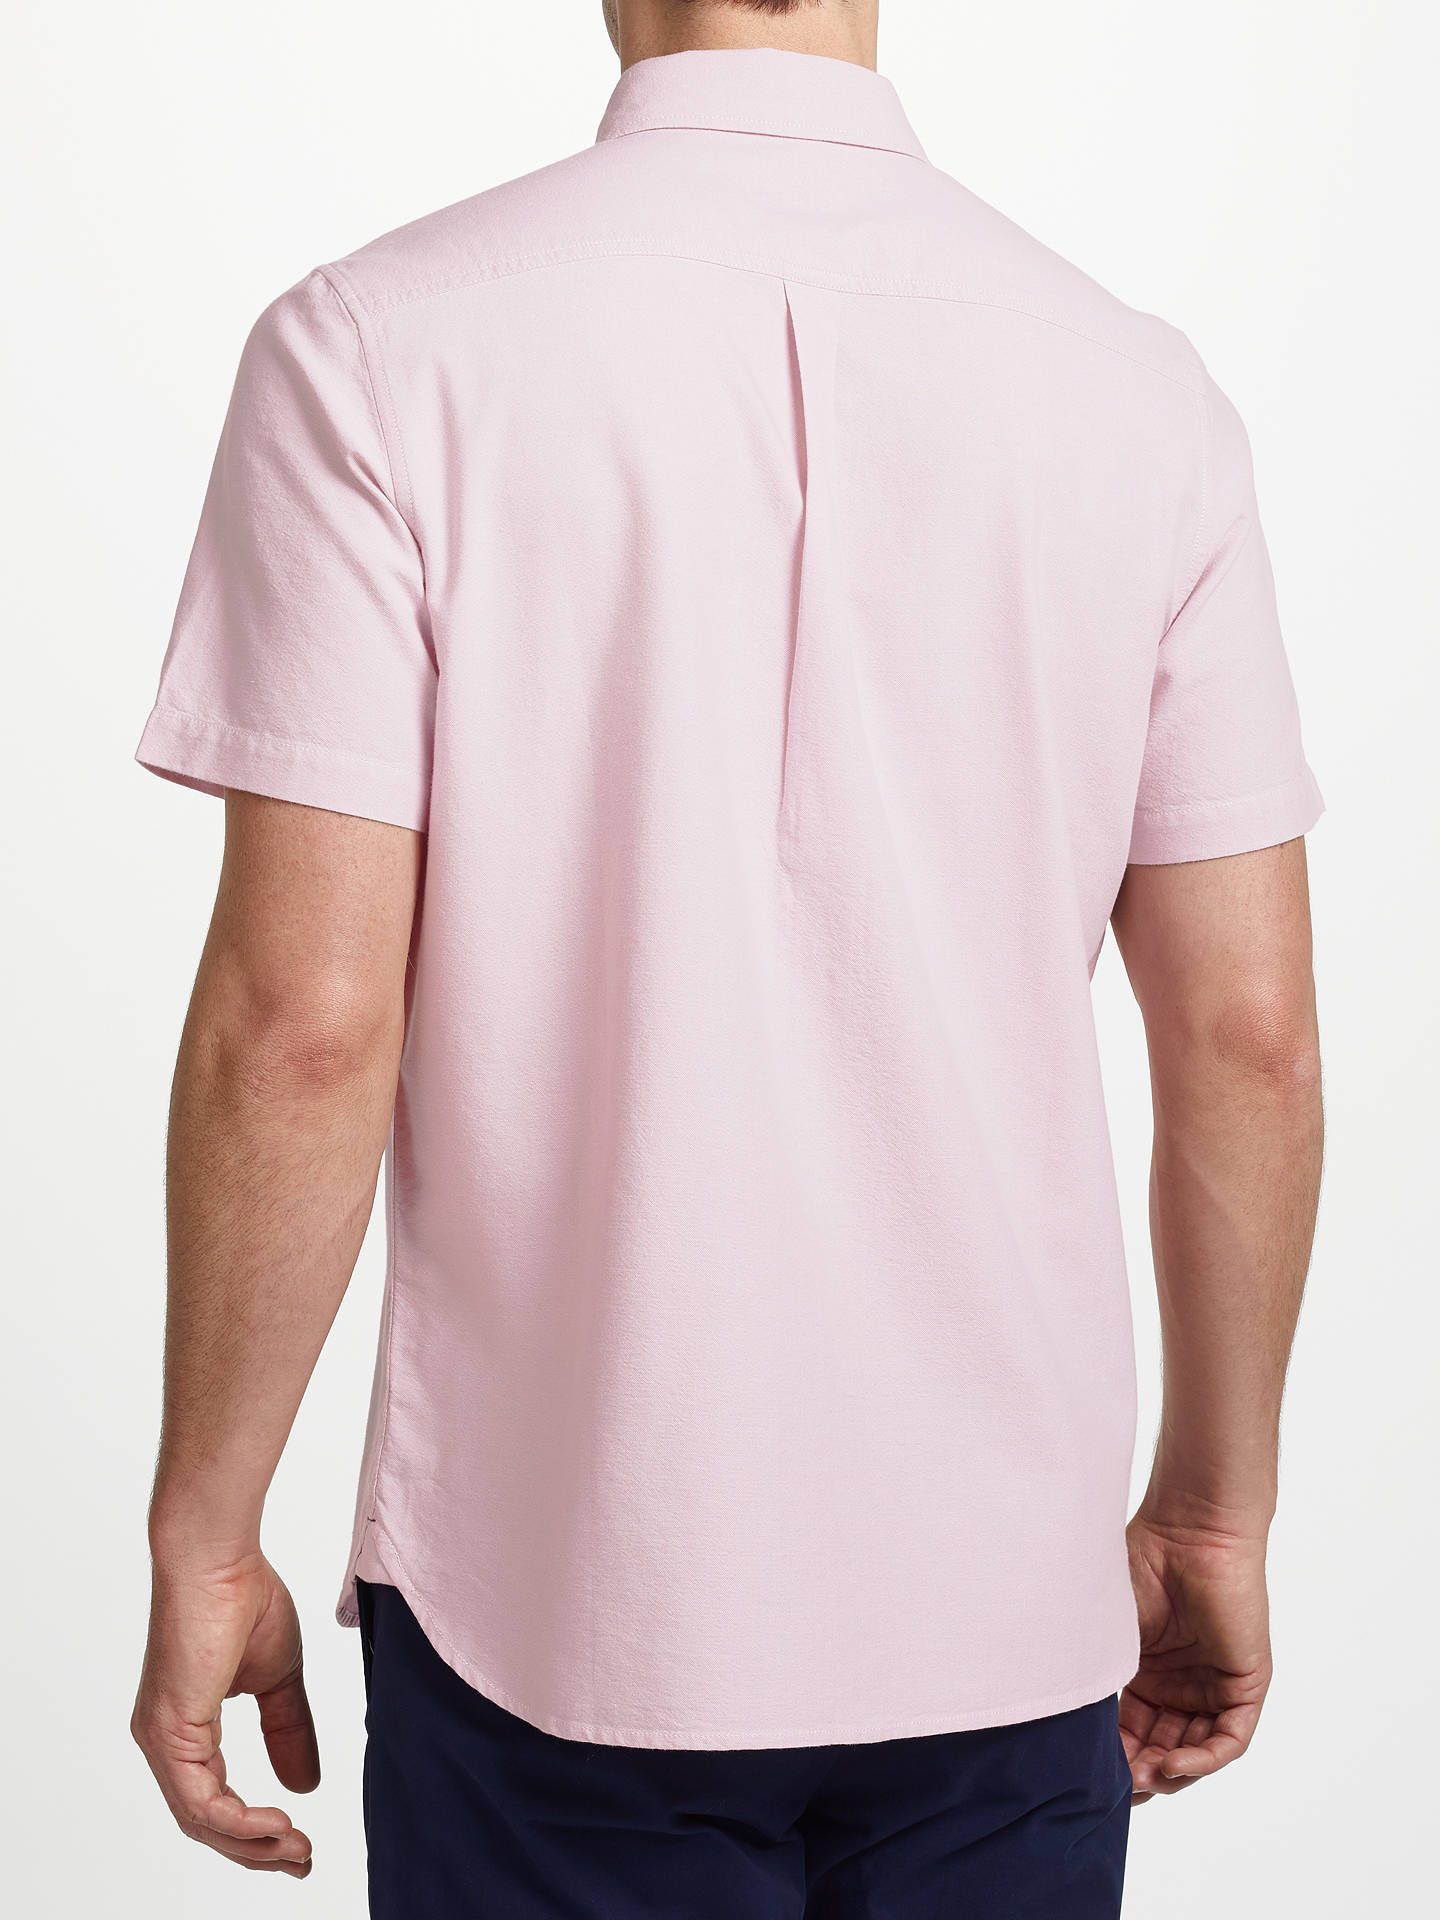 BuyJohn Lewis & Partners Cotton Oxford Short Sleeve Shirt, Pink, S Online at johnlewis.com